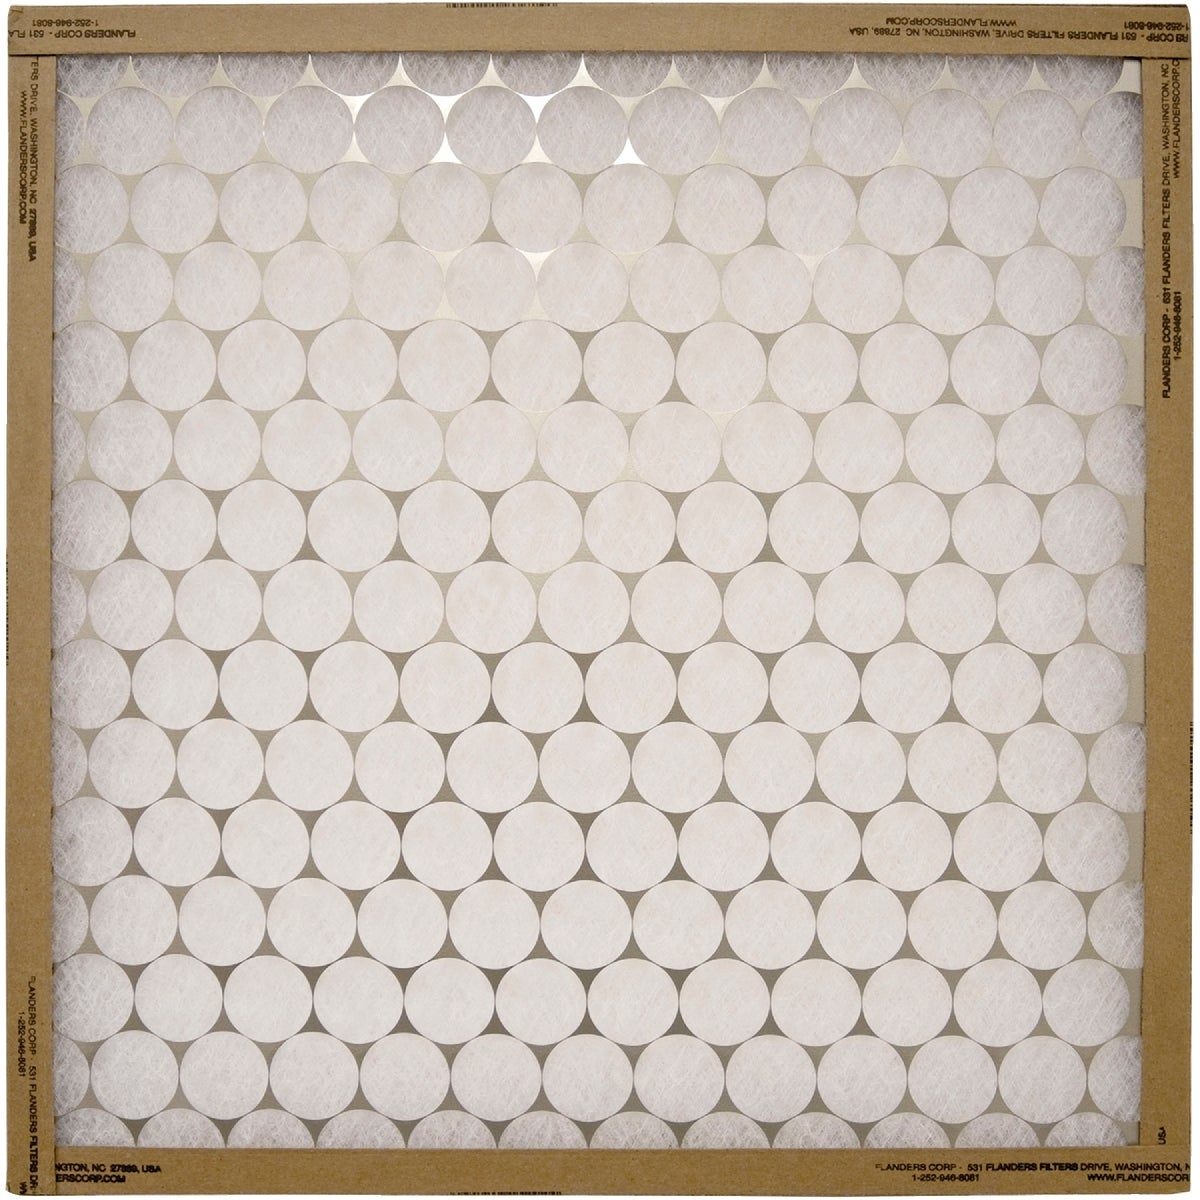 16X30X1 FURNACE FILTER - 10255.011630 by Flanders Corp